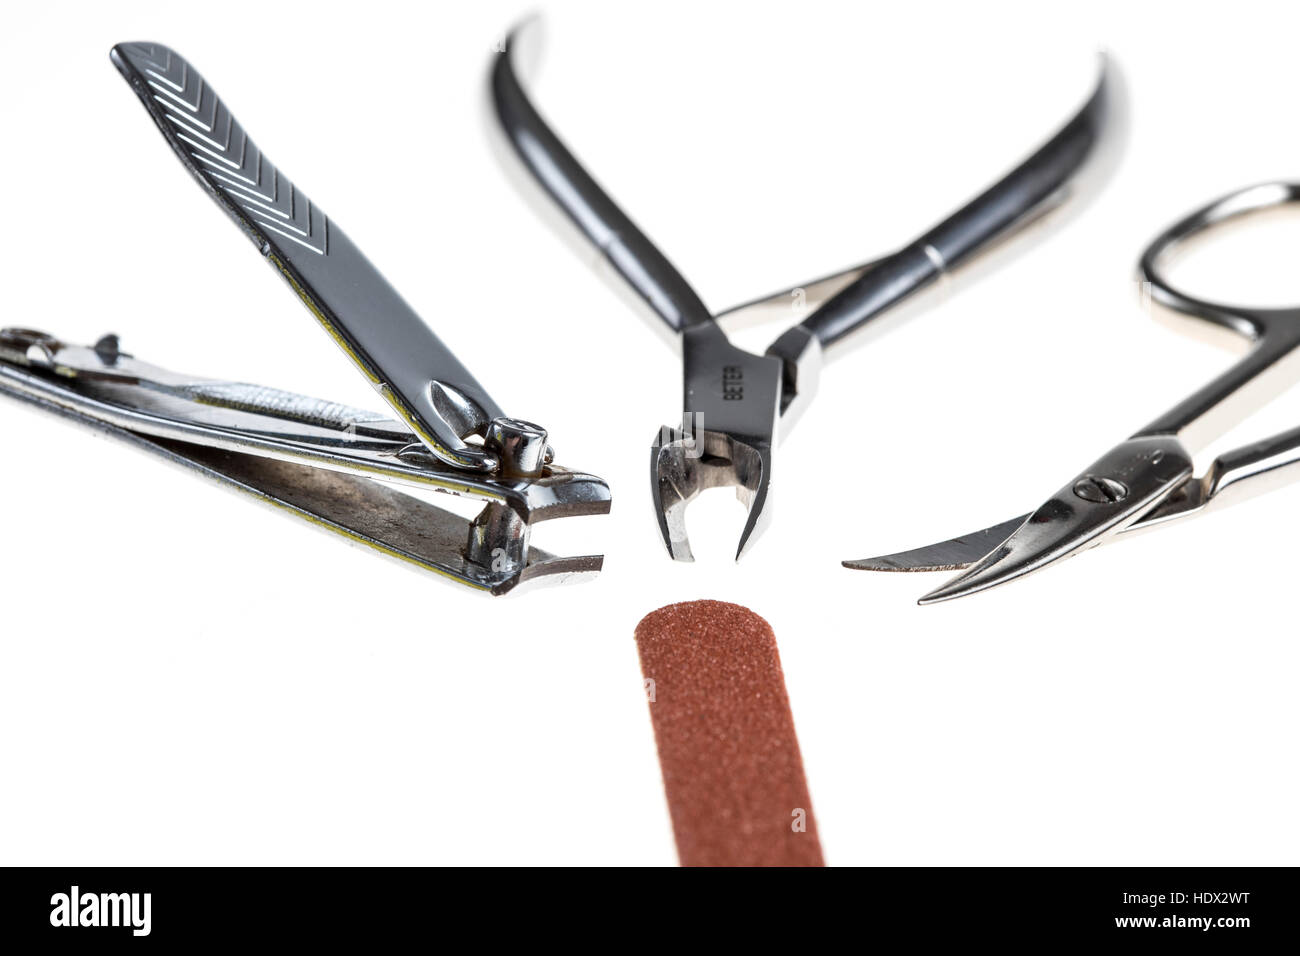 Nail care tools, nail clippers, nail scissors, nail nippers, nail files, - Stock Image